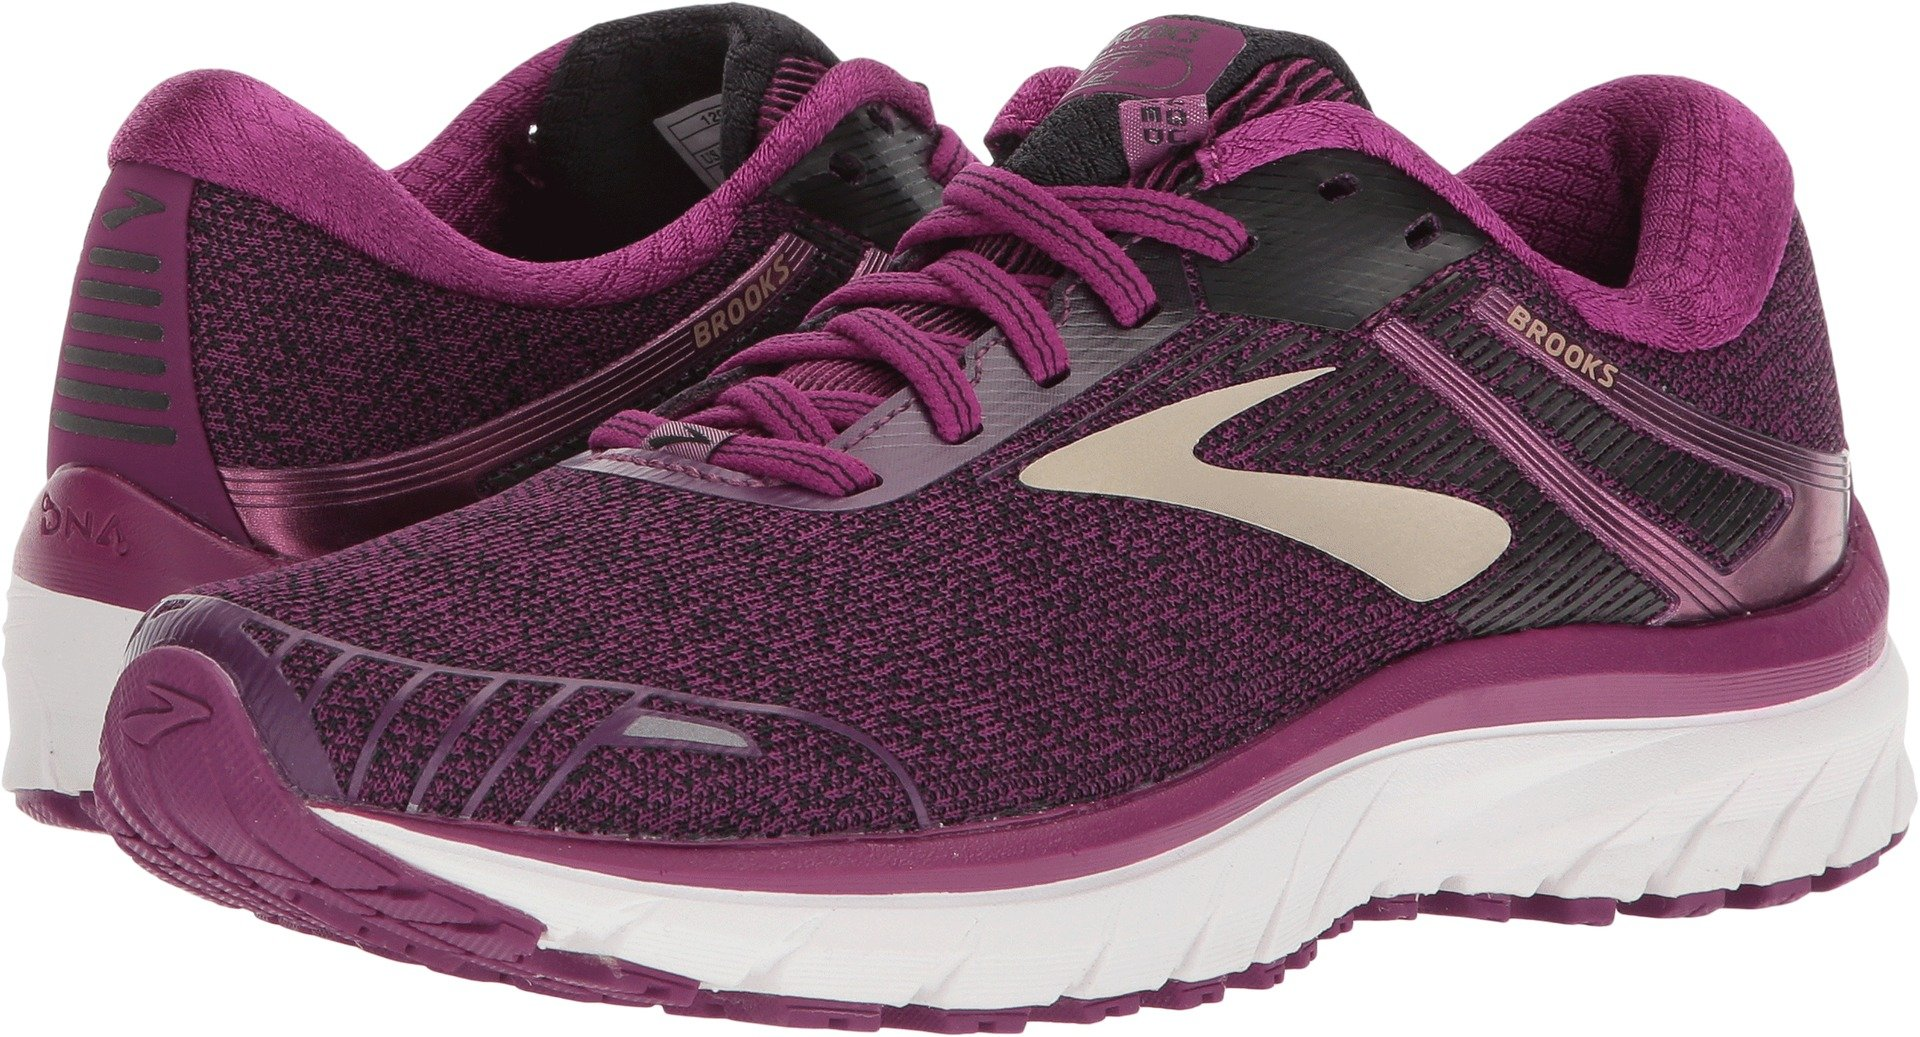 Brooks Women's Adrenaline GTS 18 Purple/Black/Champagne 5 B US